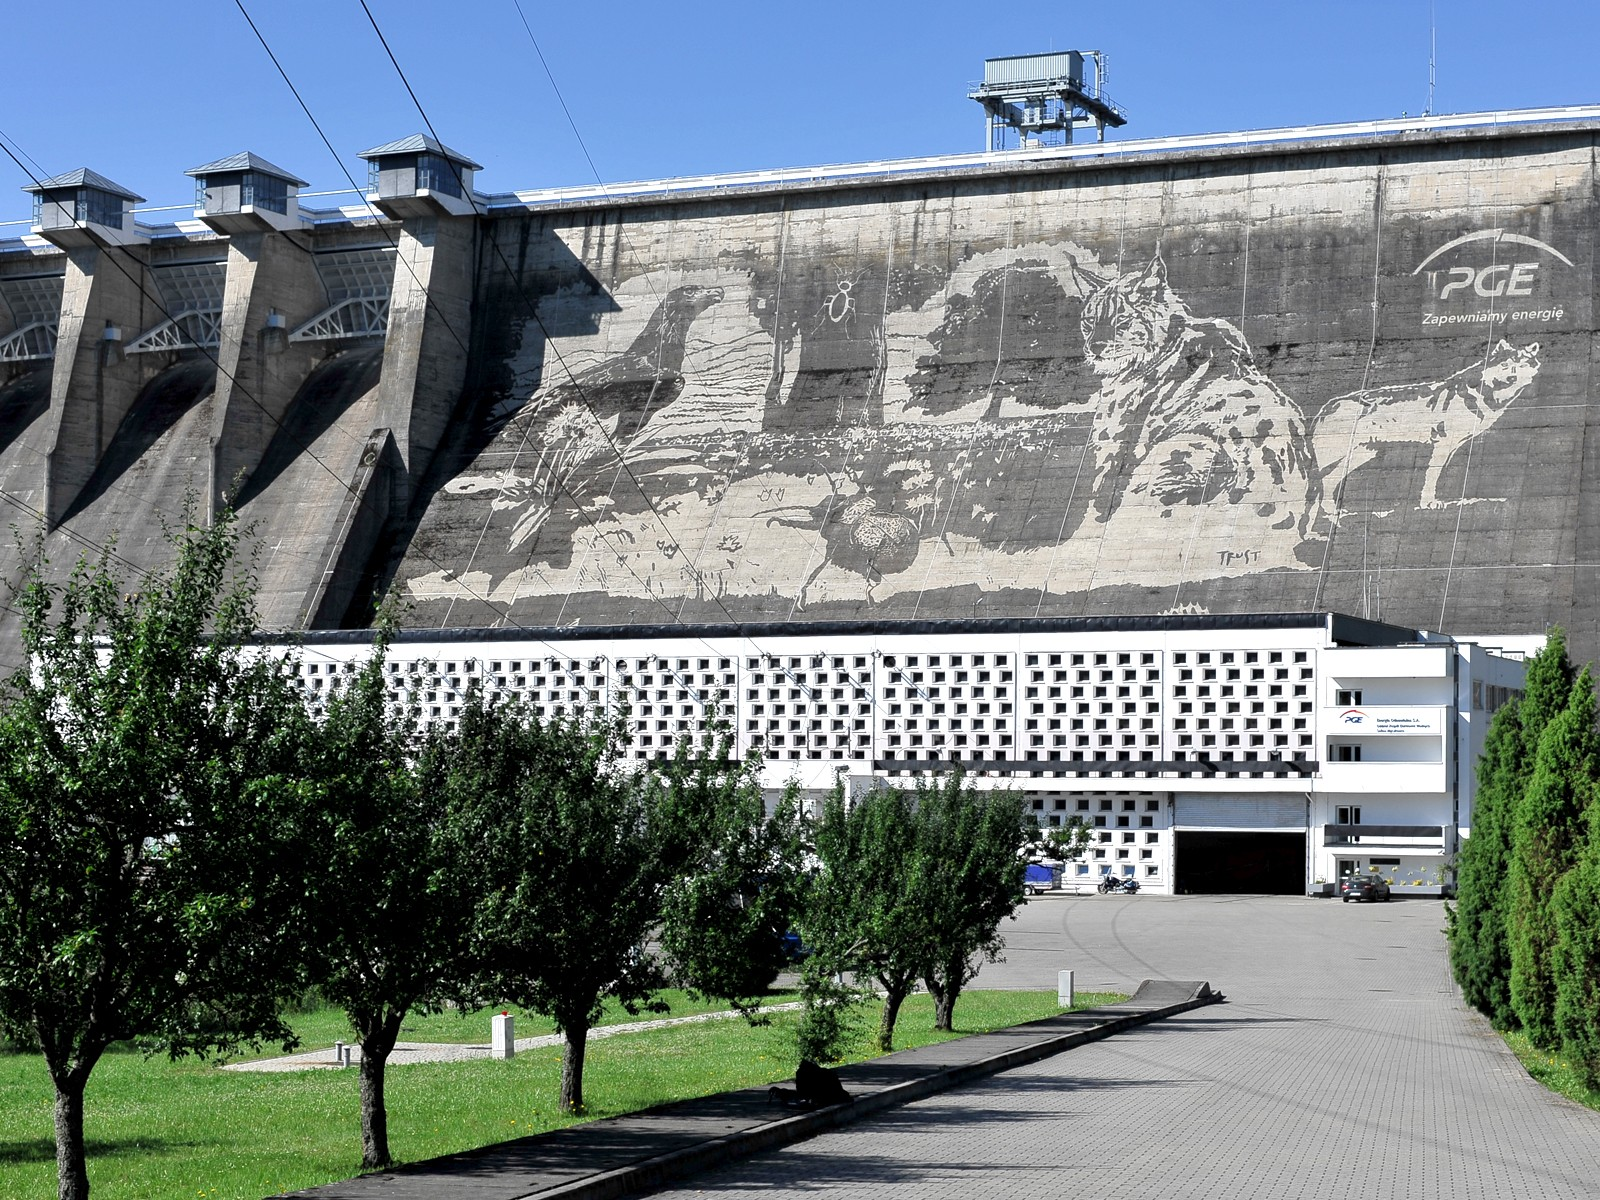 Ecological mural in Solina for PGE | Ecological mural - Clean graffiti | Portfolio